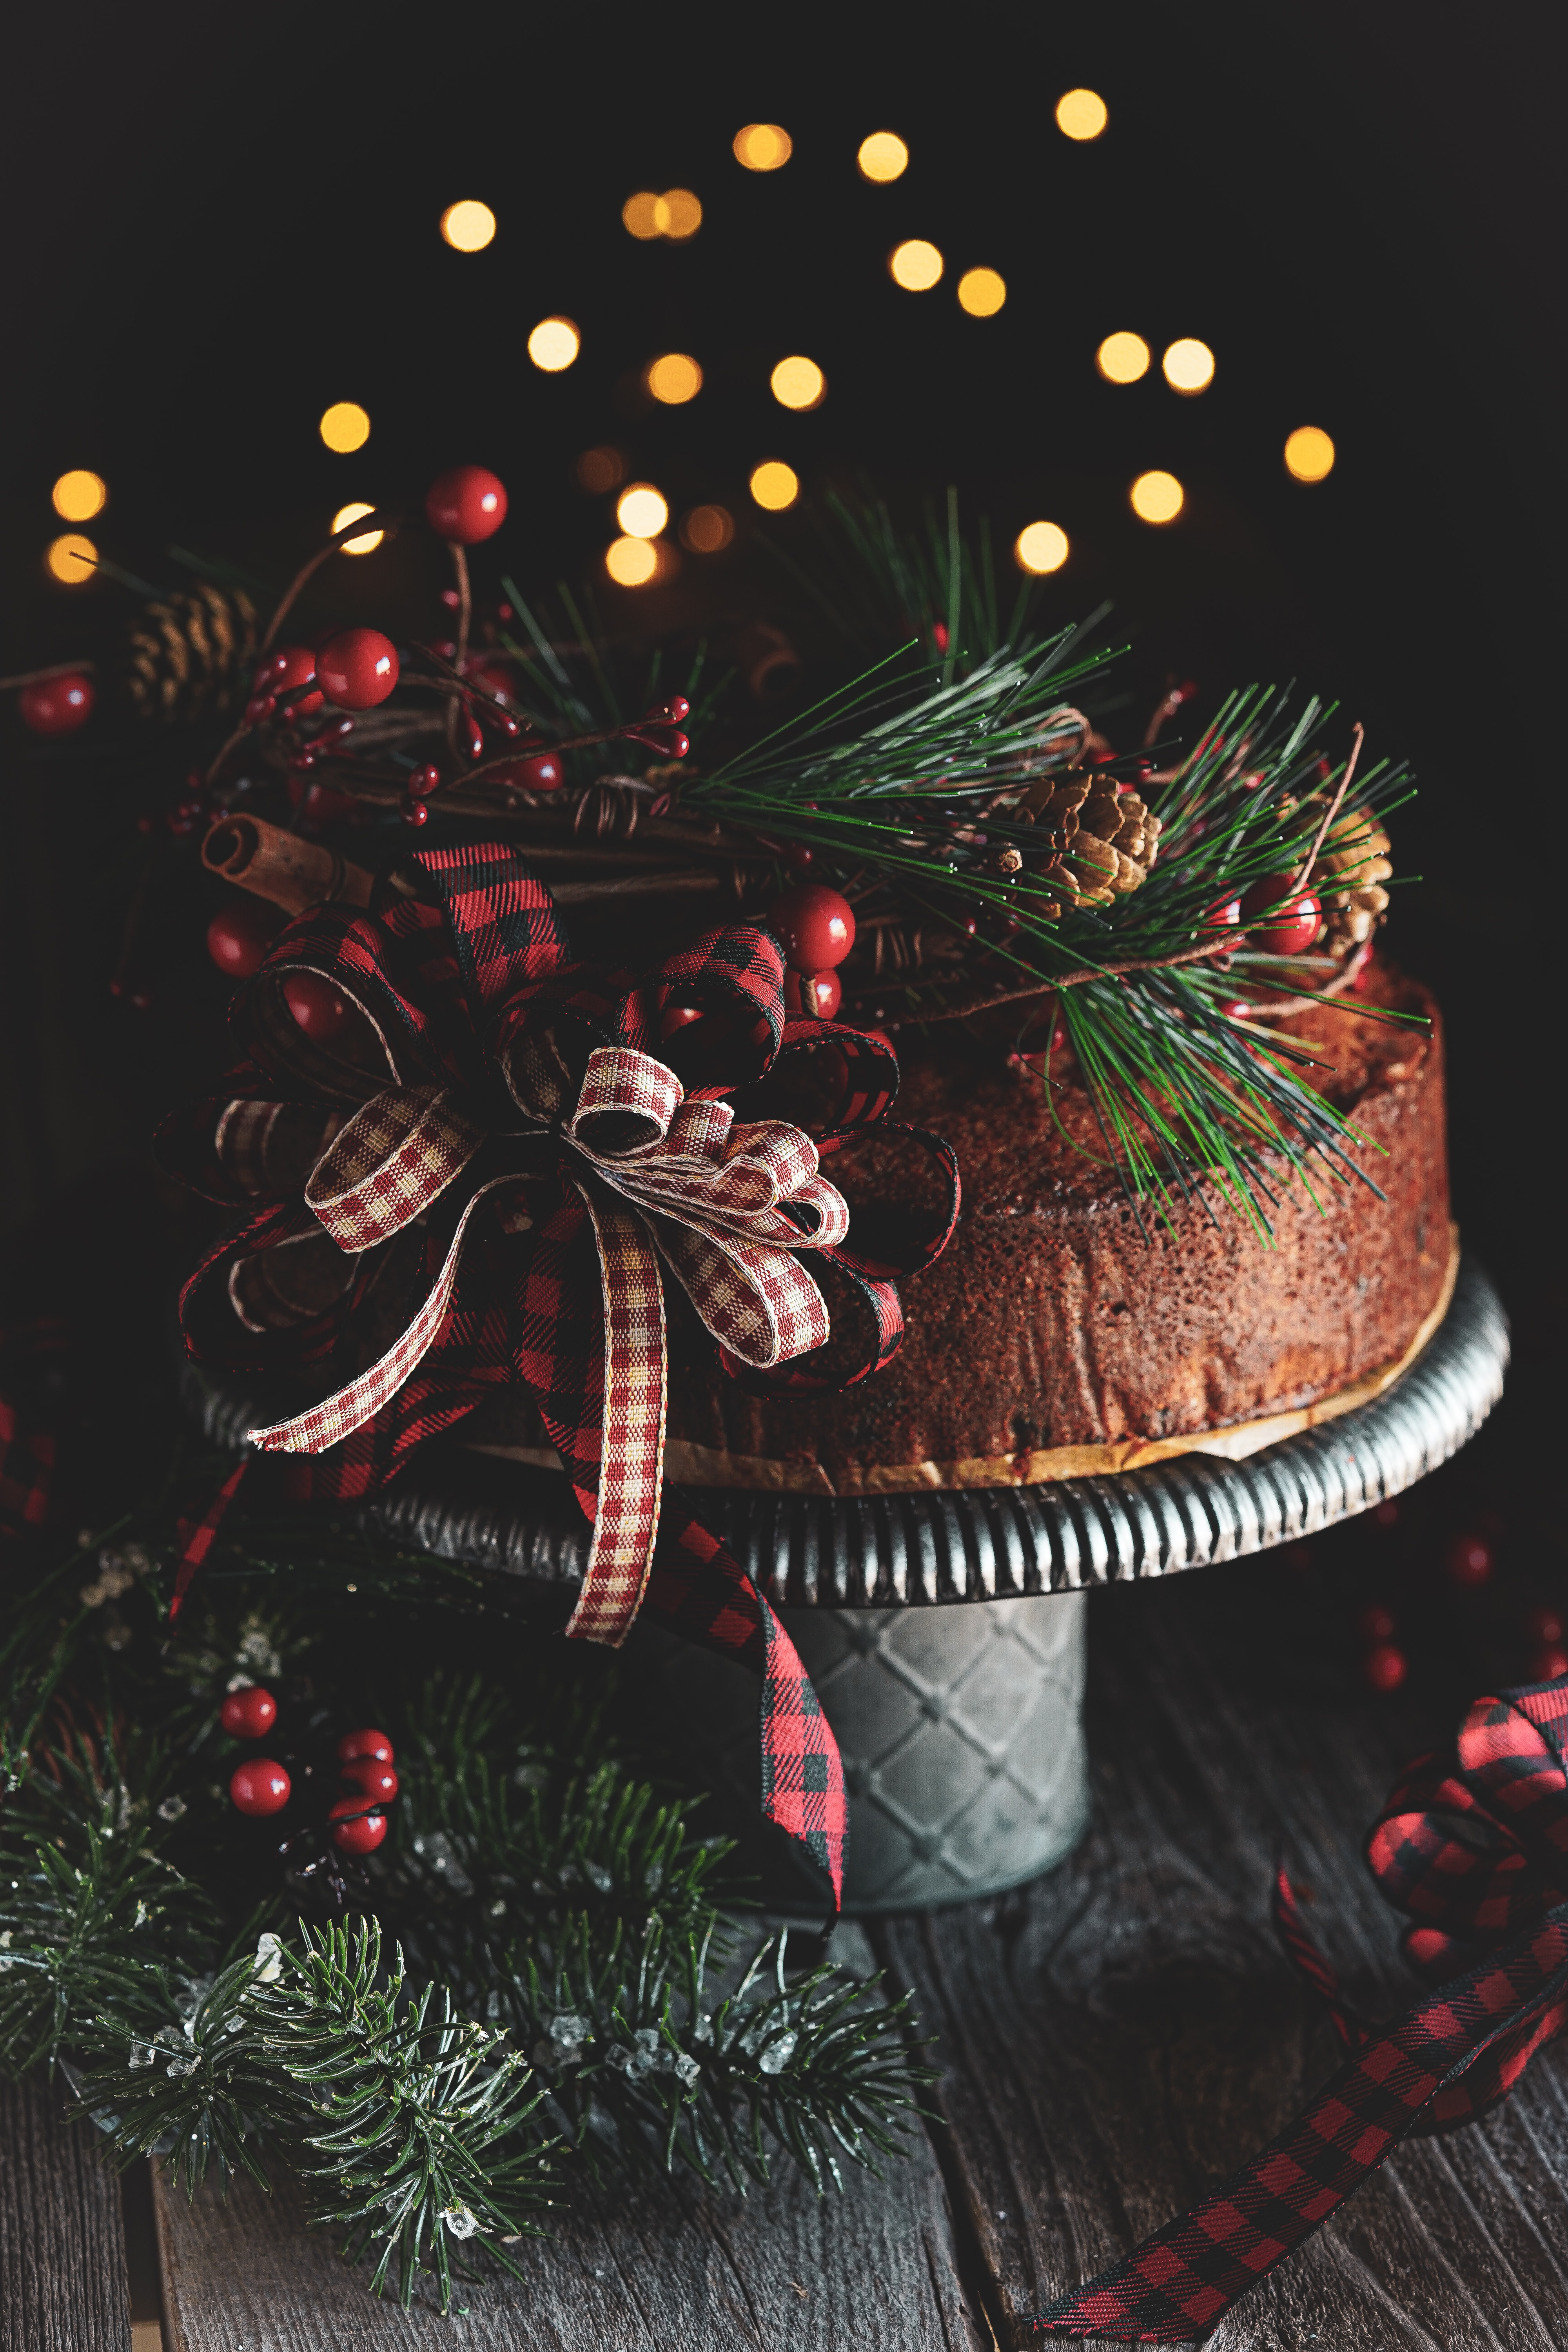 109980 Screensavers and Wallpapers Spruce for phone. Download Cake, Holidays, Cones, Decorations, Branches, Spruce, Fir, Bow pictures for free